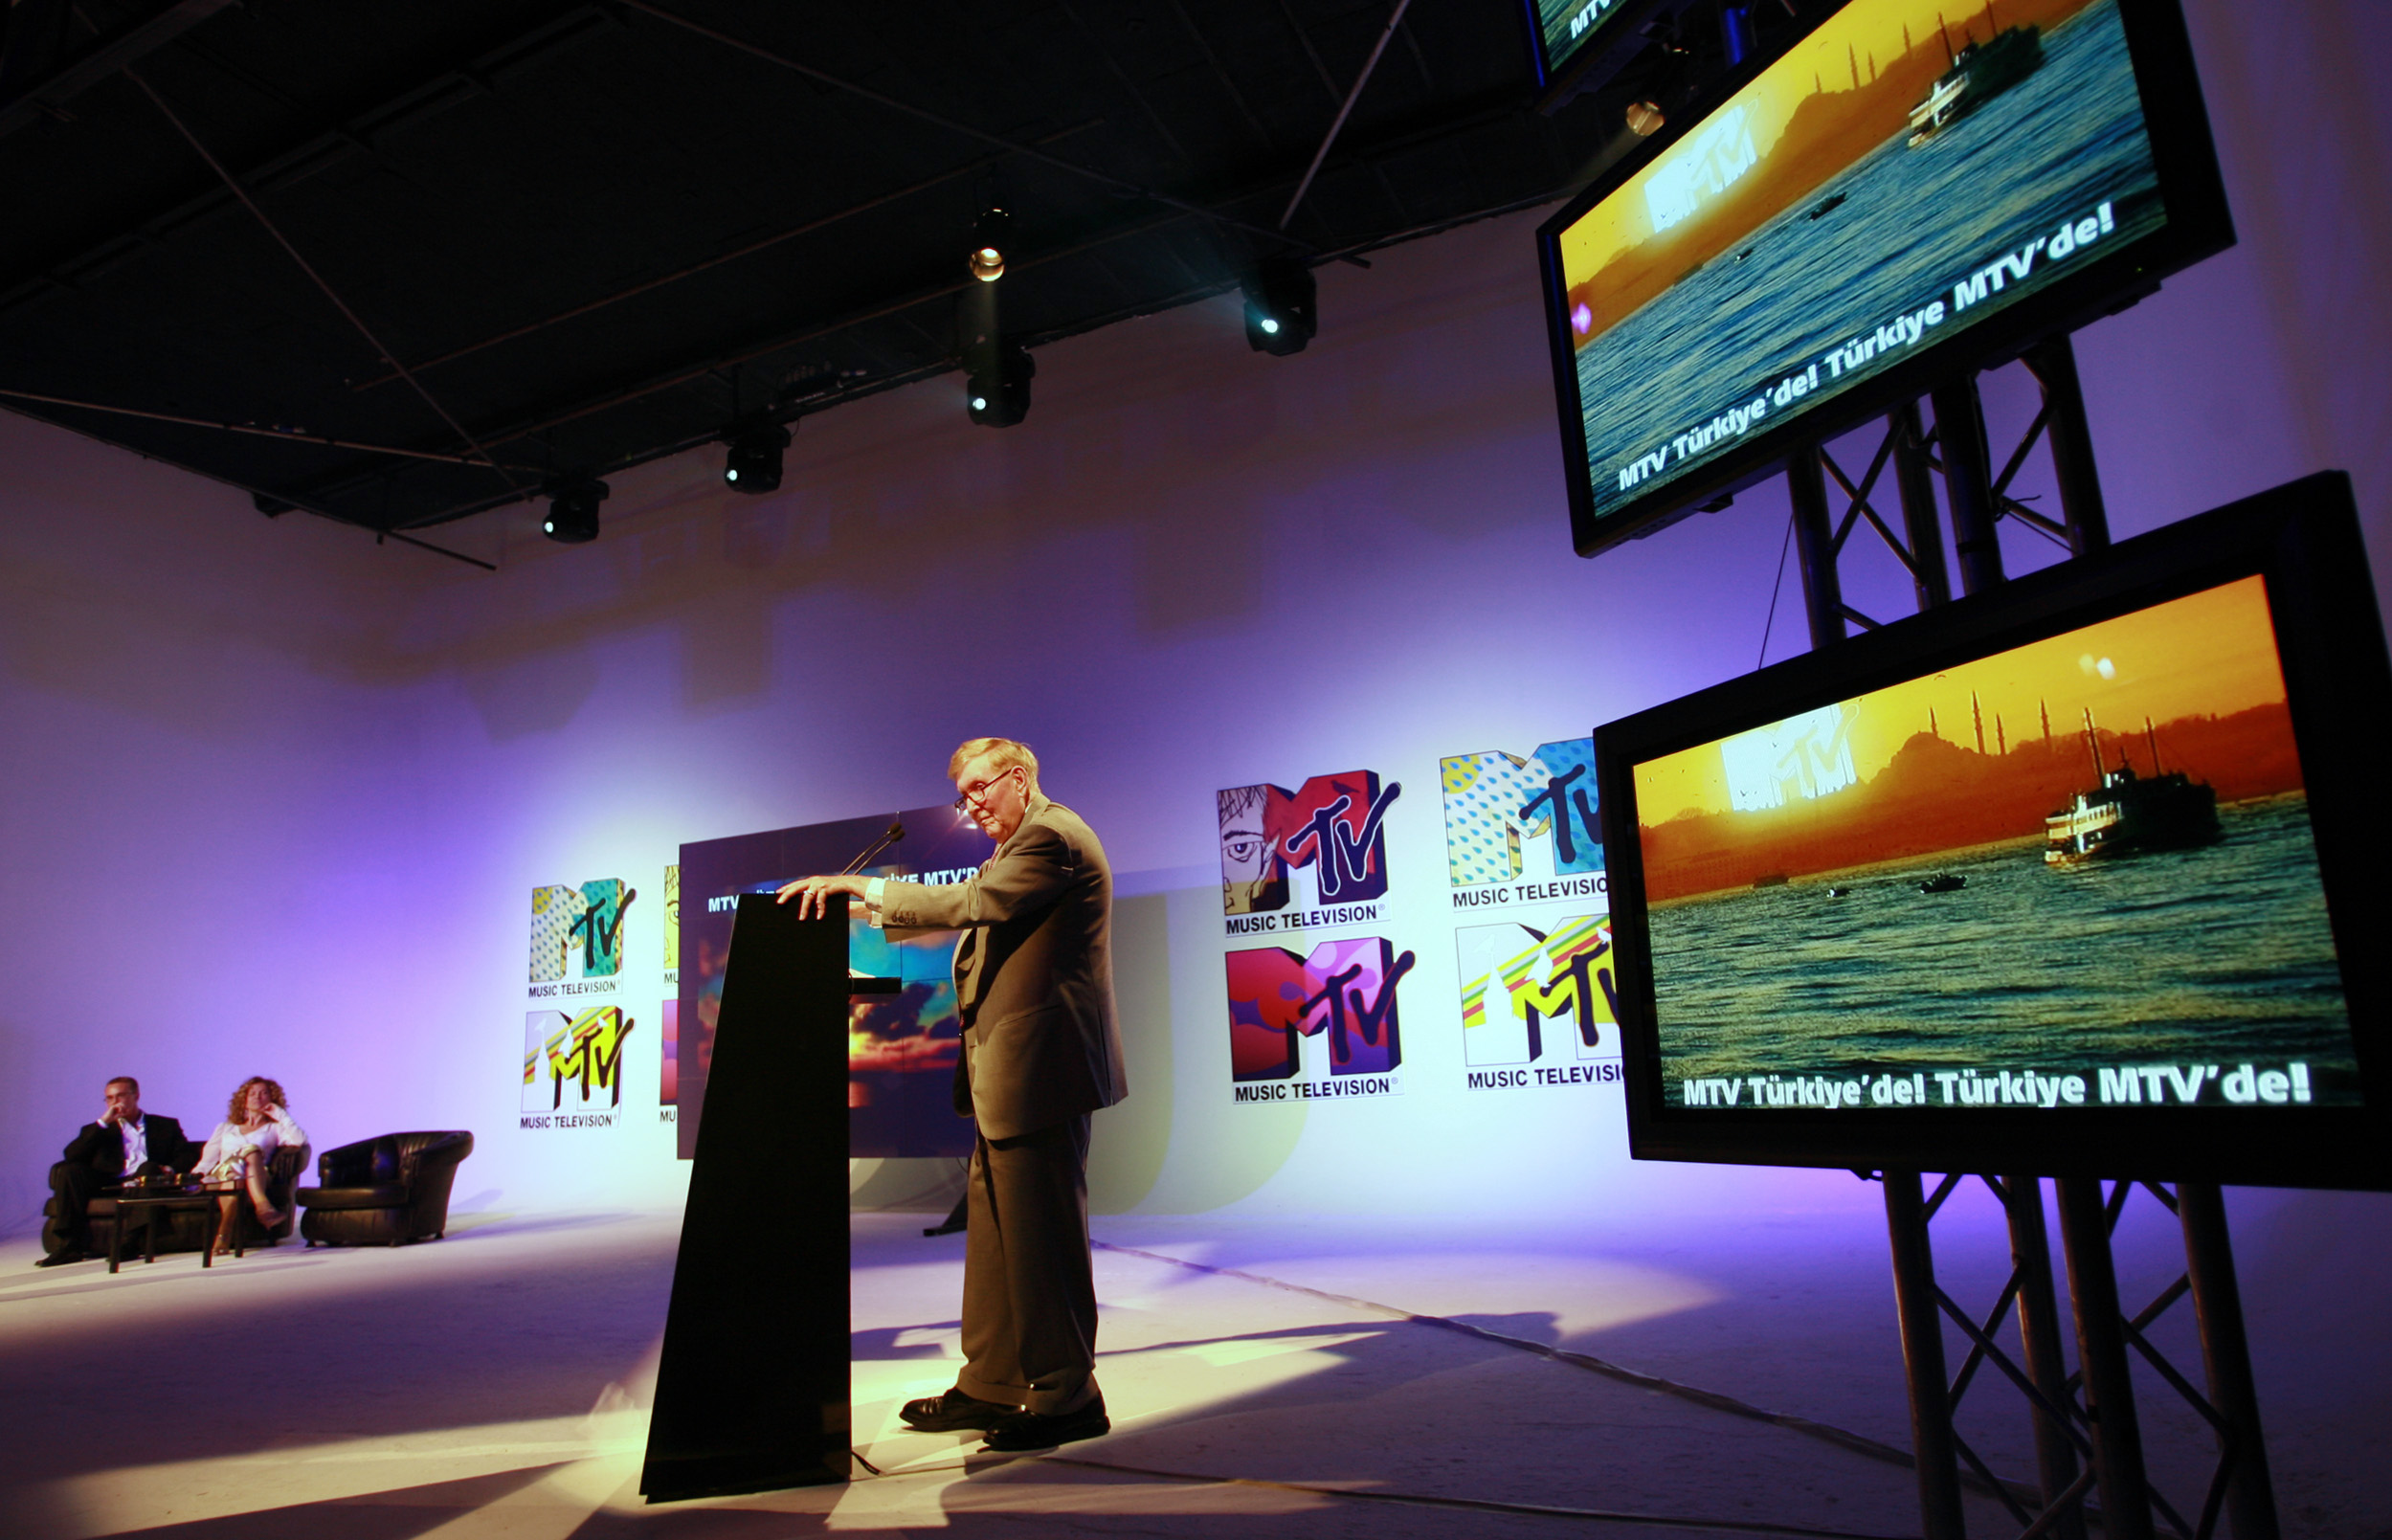 Viacom Executive Chairman Sumner Redstone addresses guests at the MTV studios in Istanbul